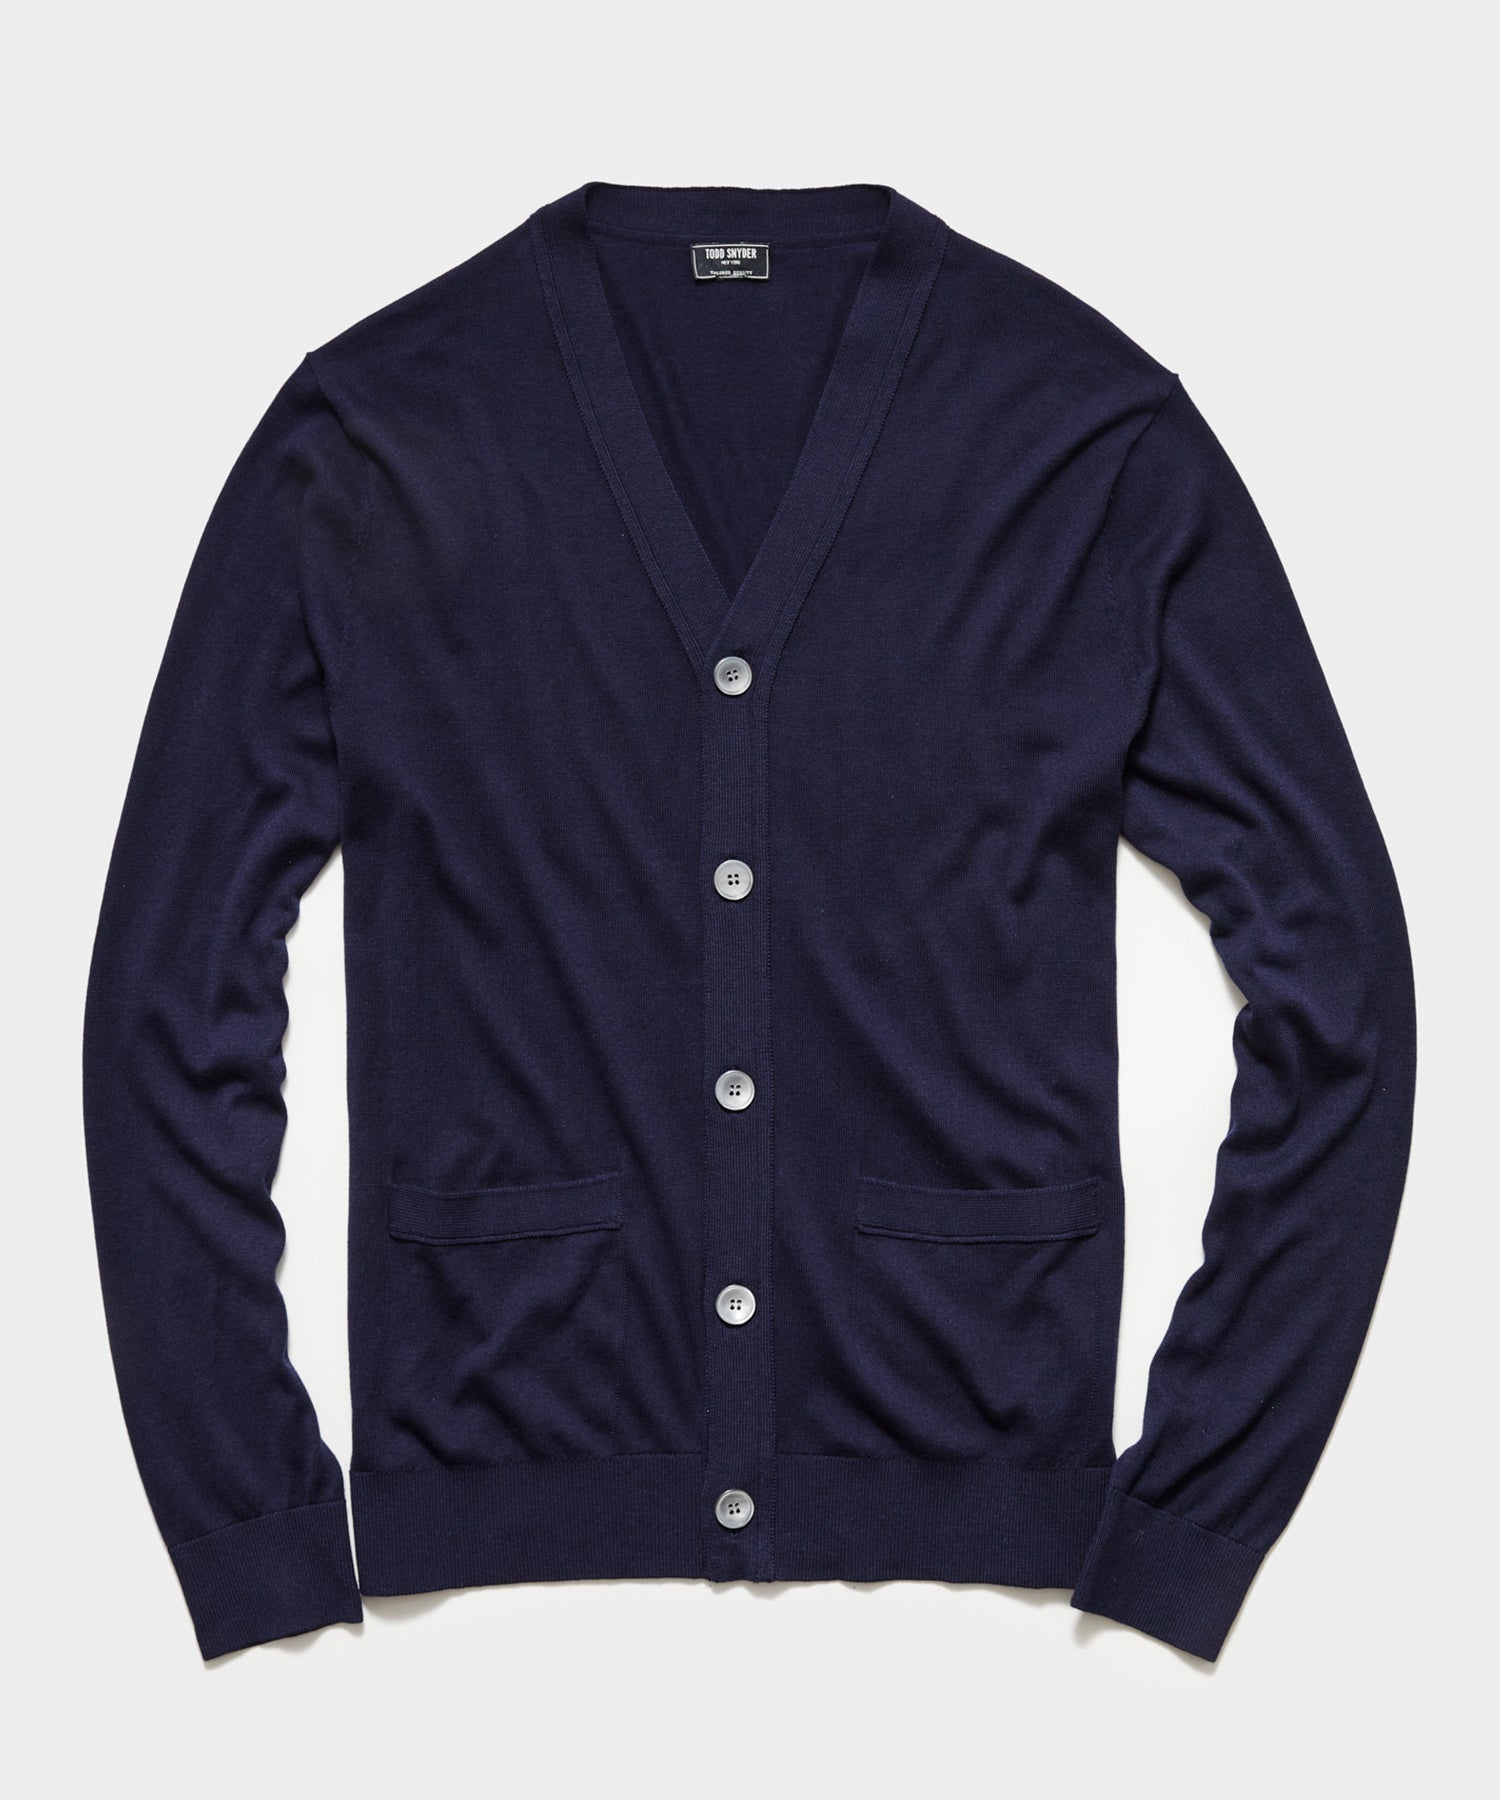 Todd Snyder Cotton Silk Cardigan